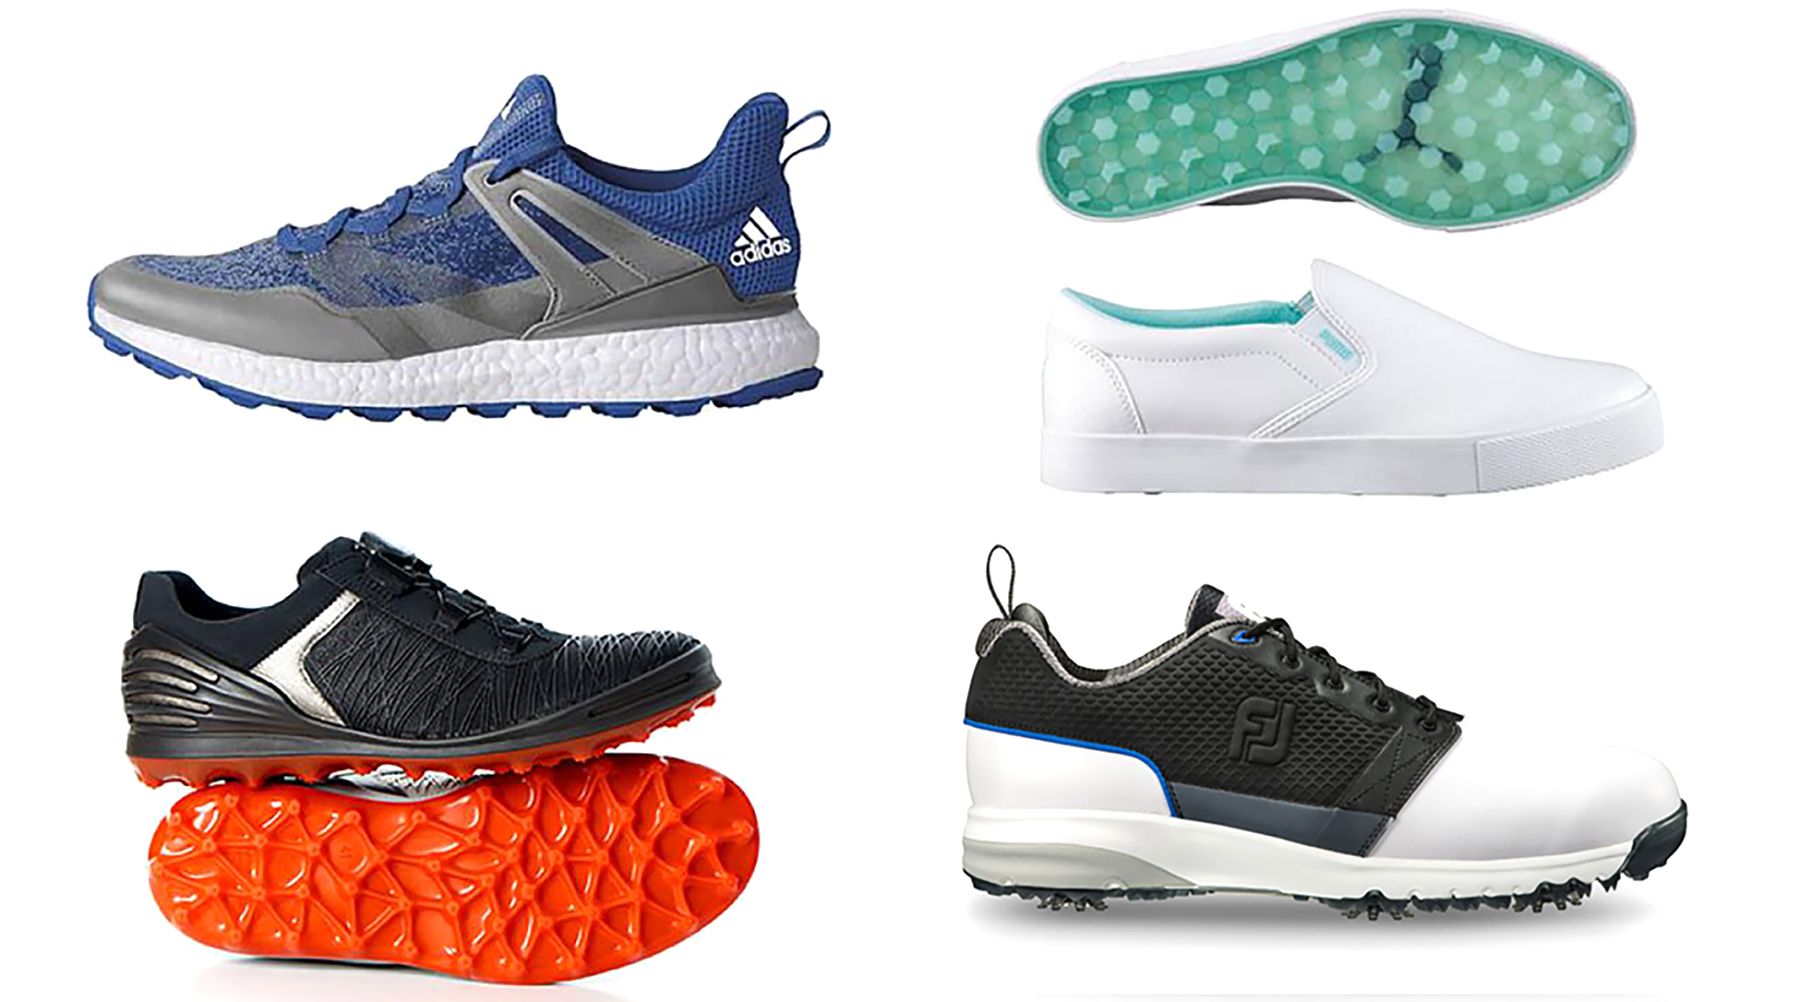 best 2017 golf shoes for men and women golfcom